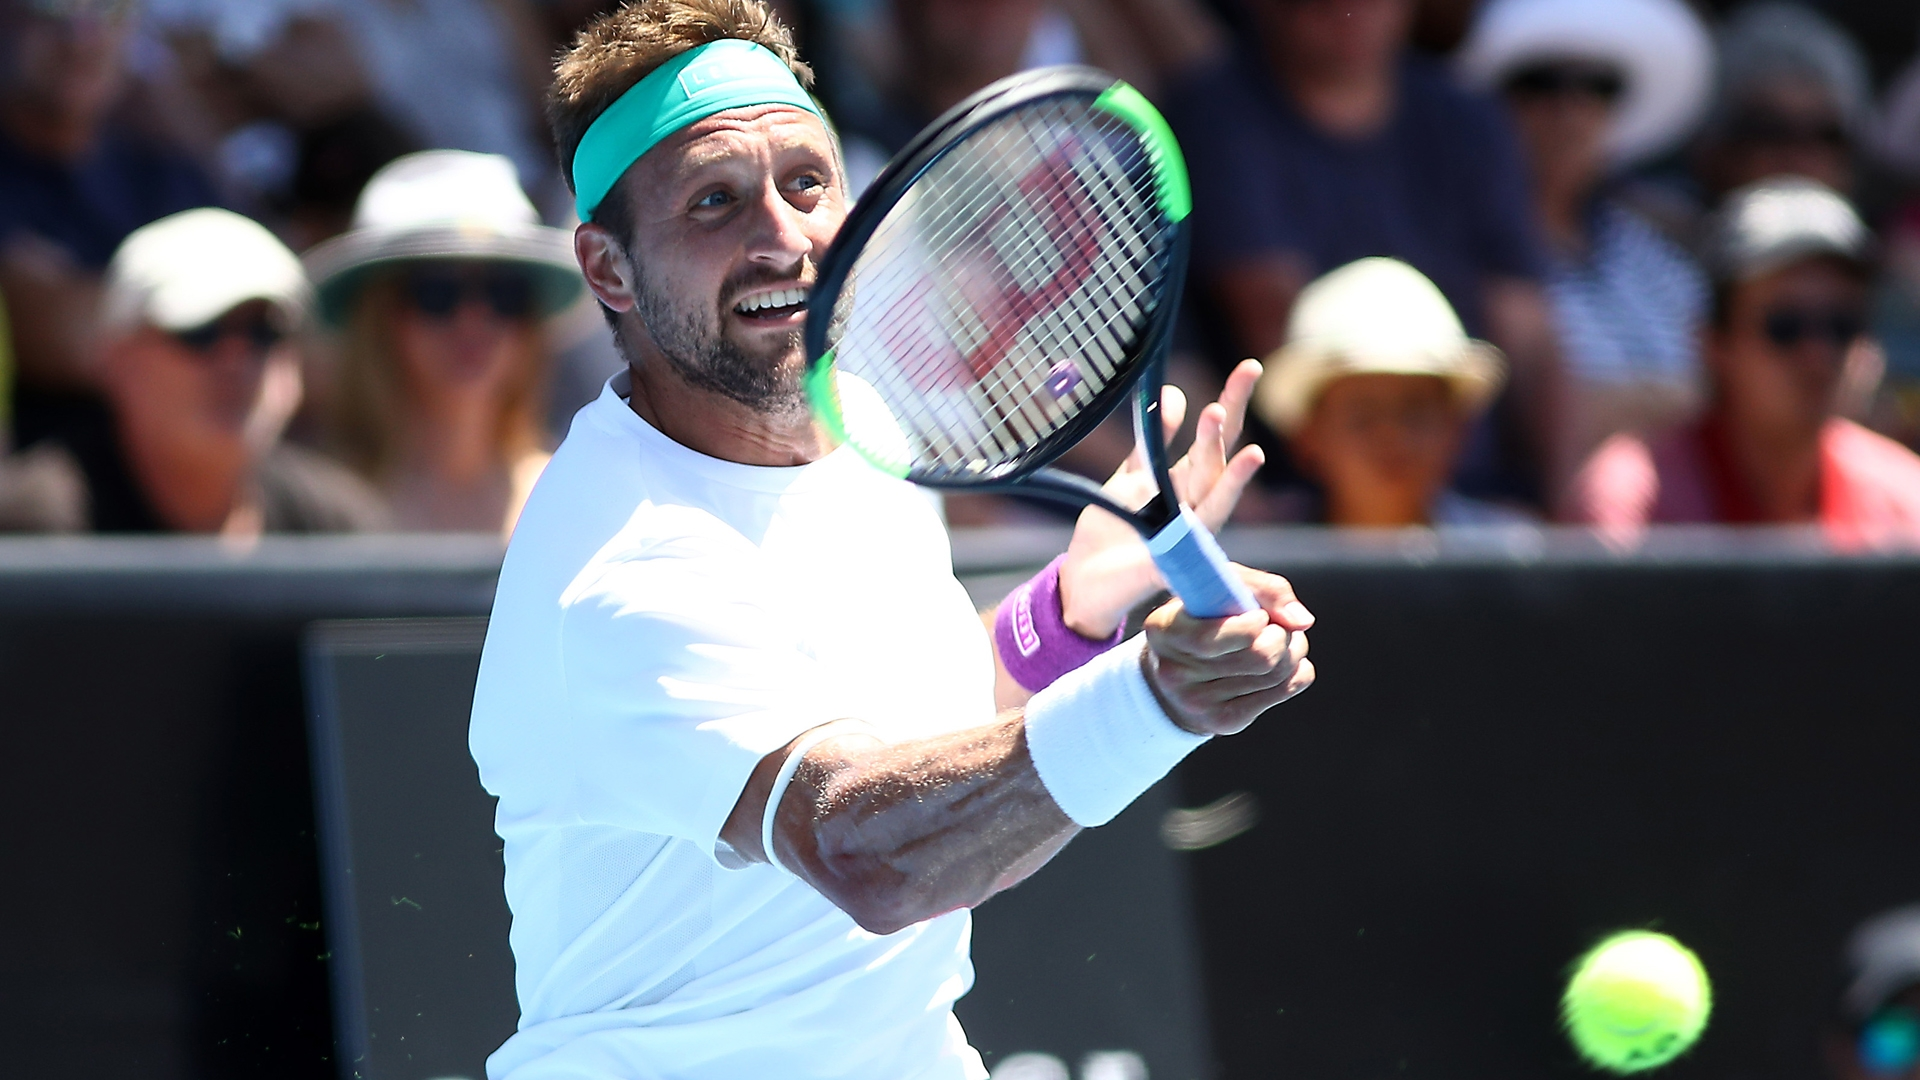 Tennis: Sandgren wins first ATP title